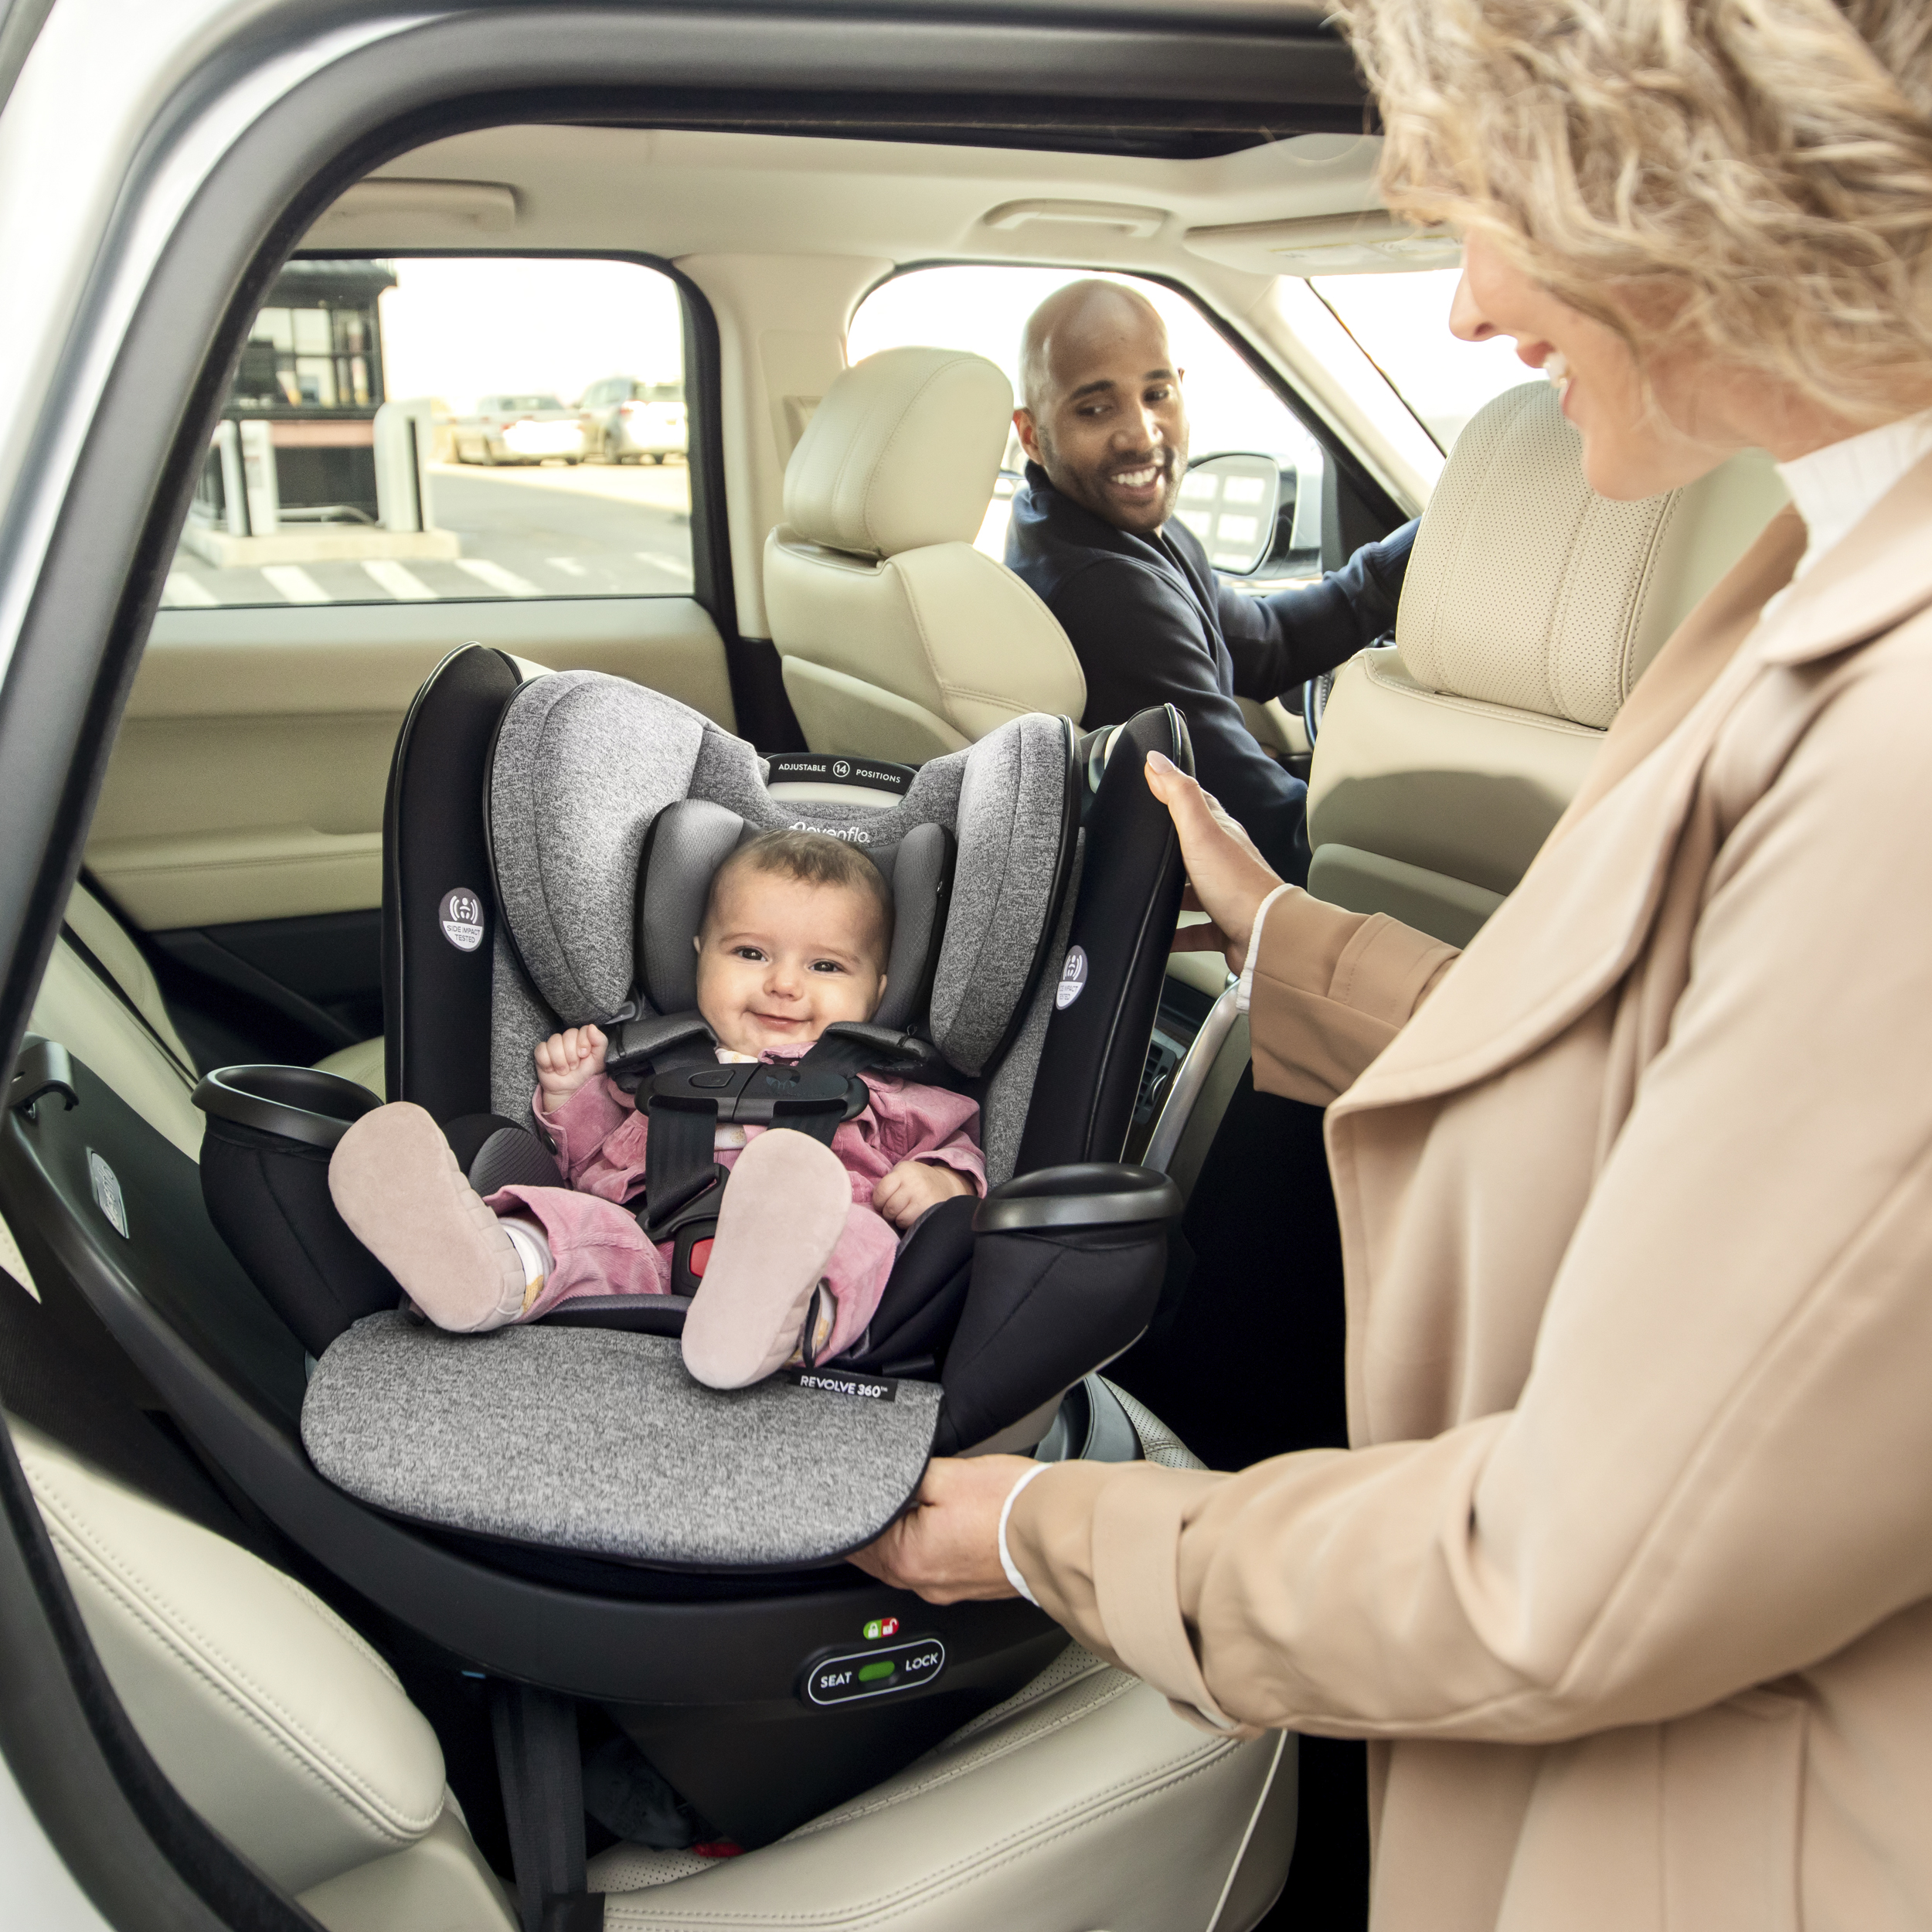 Evenflo Gold Revolve360 car seat